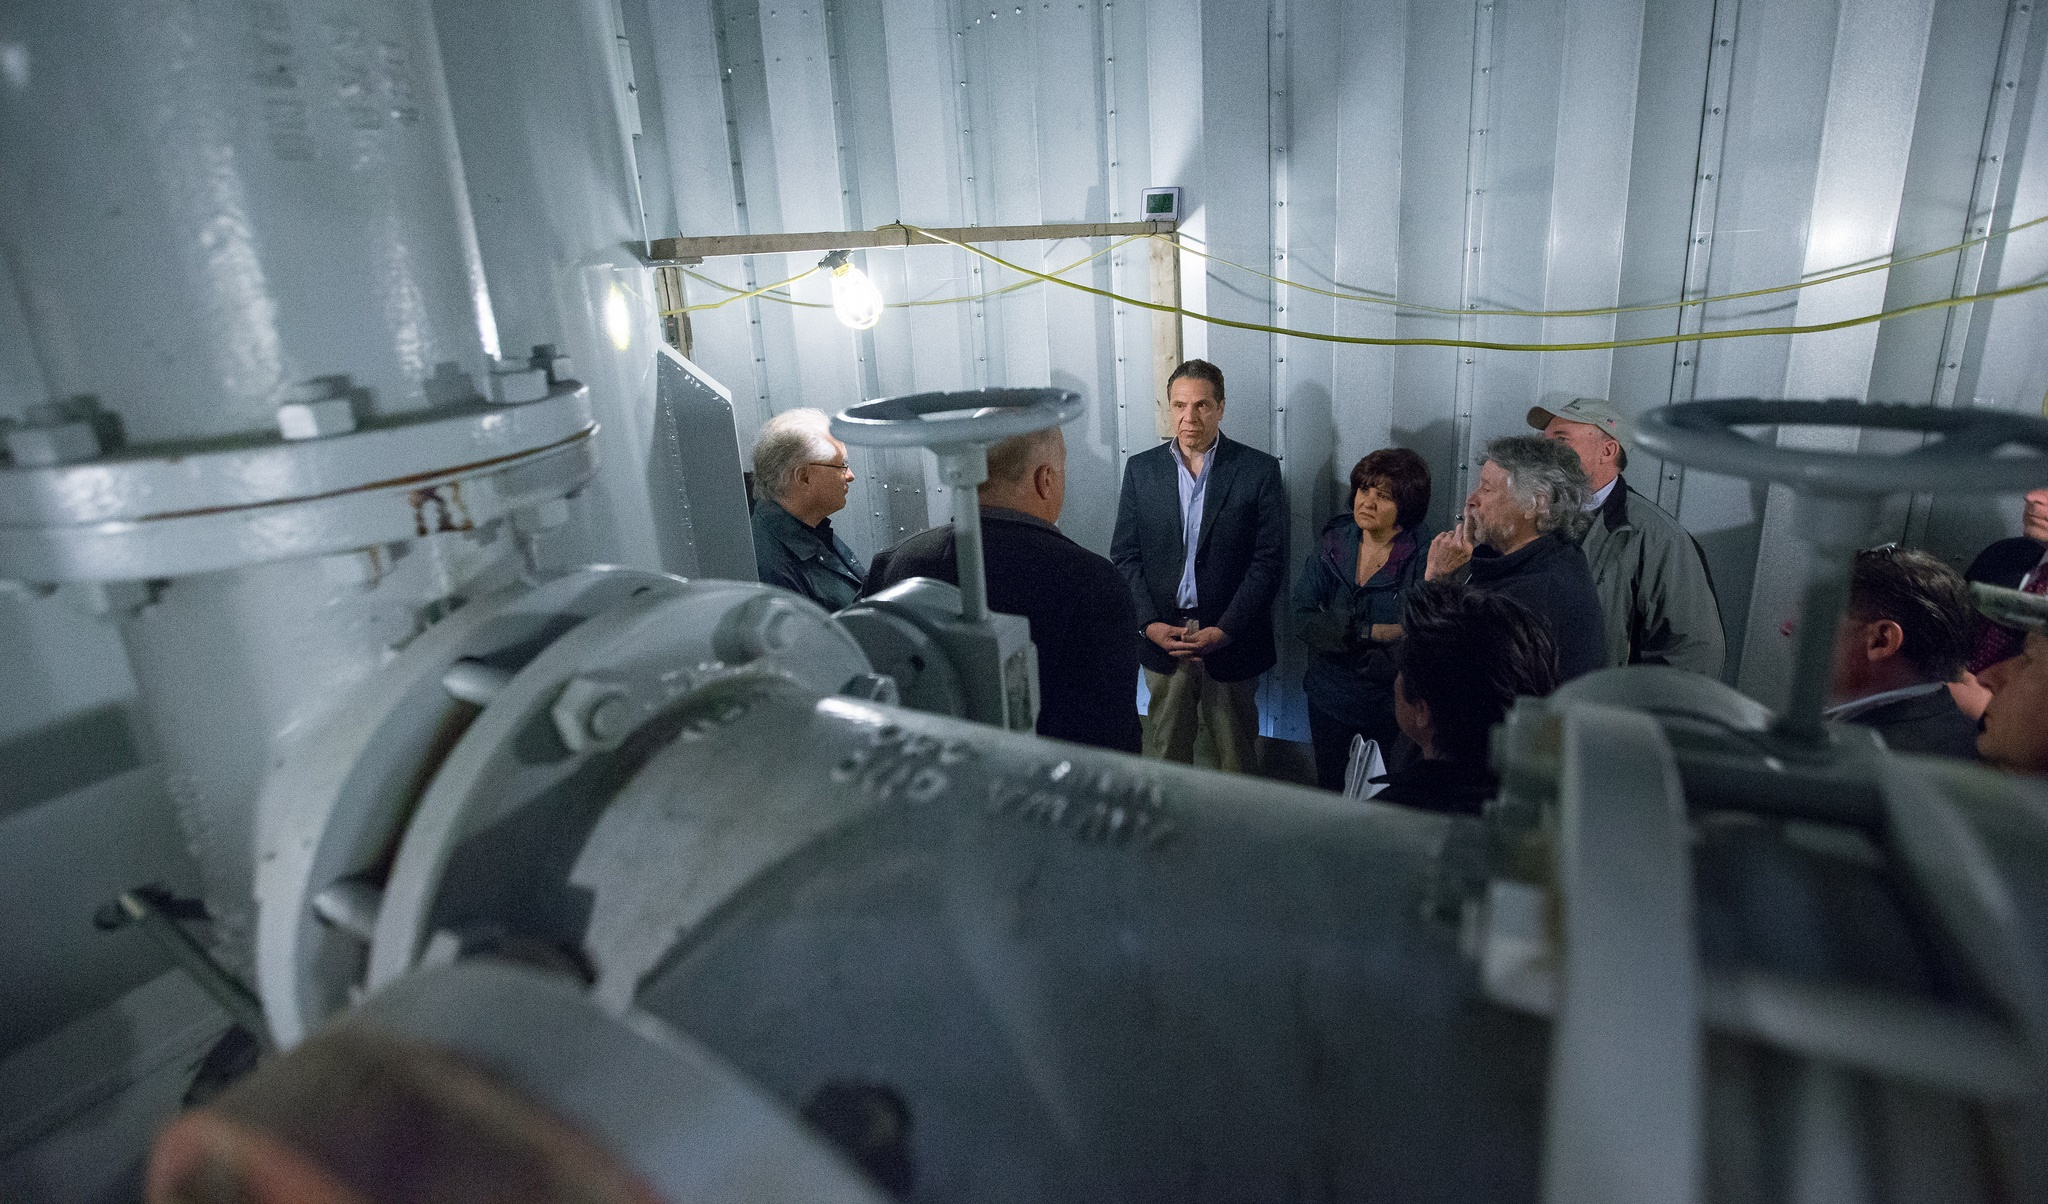 Gov. Andrew Cuomo met with Hoosick Falls officials and other state authorities to tour the Village of Hoosick Falls water treatment plant in this March 2016 photo. The Hoosick Falls water source was contaminated with the chemical PFOA. Photo courtesy of New York Governor's Office